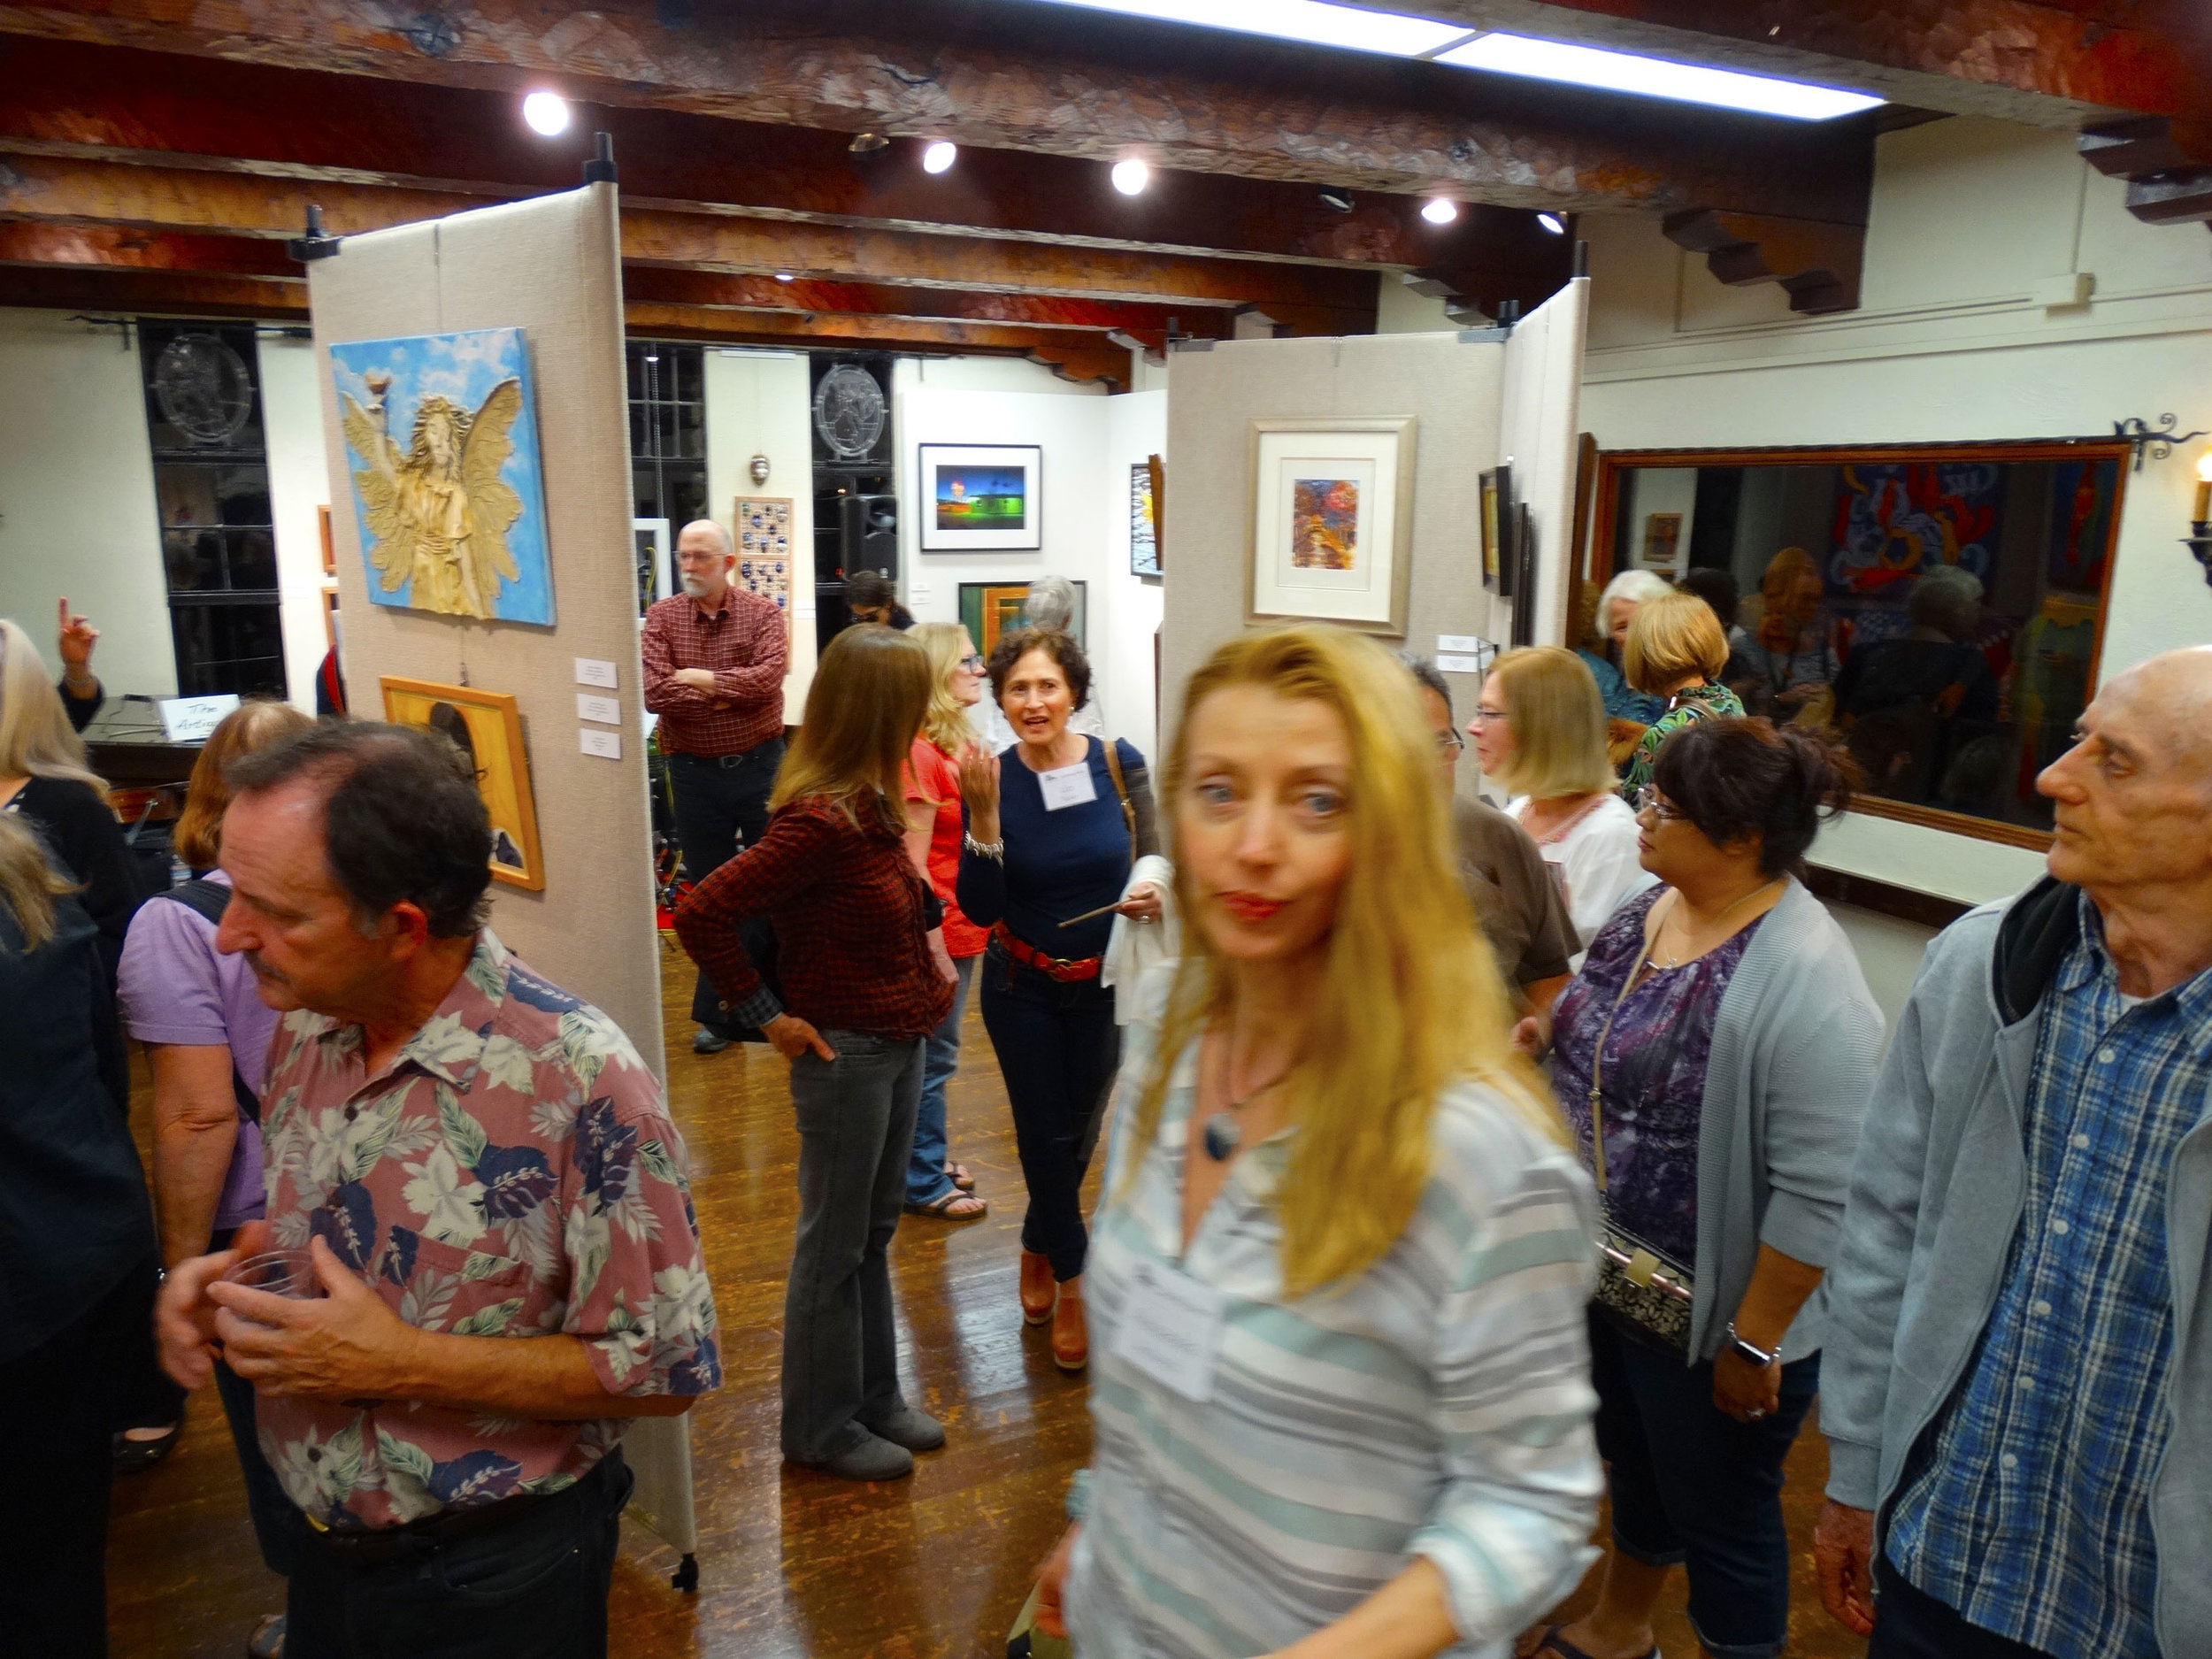 Lively-Main-Hall-of-Art-Show[1].jpg